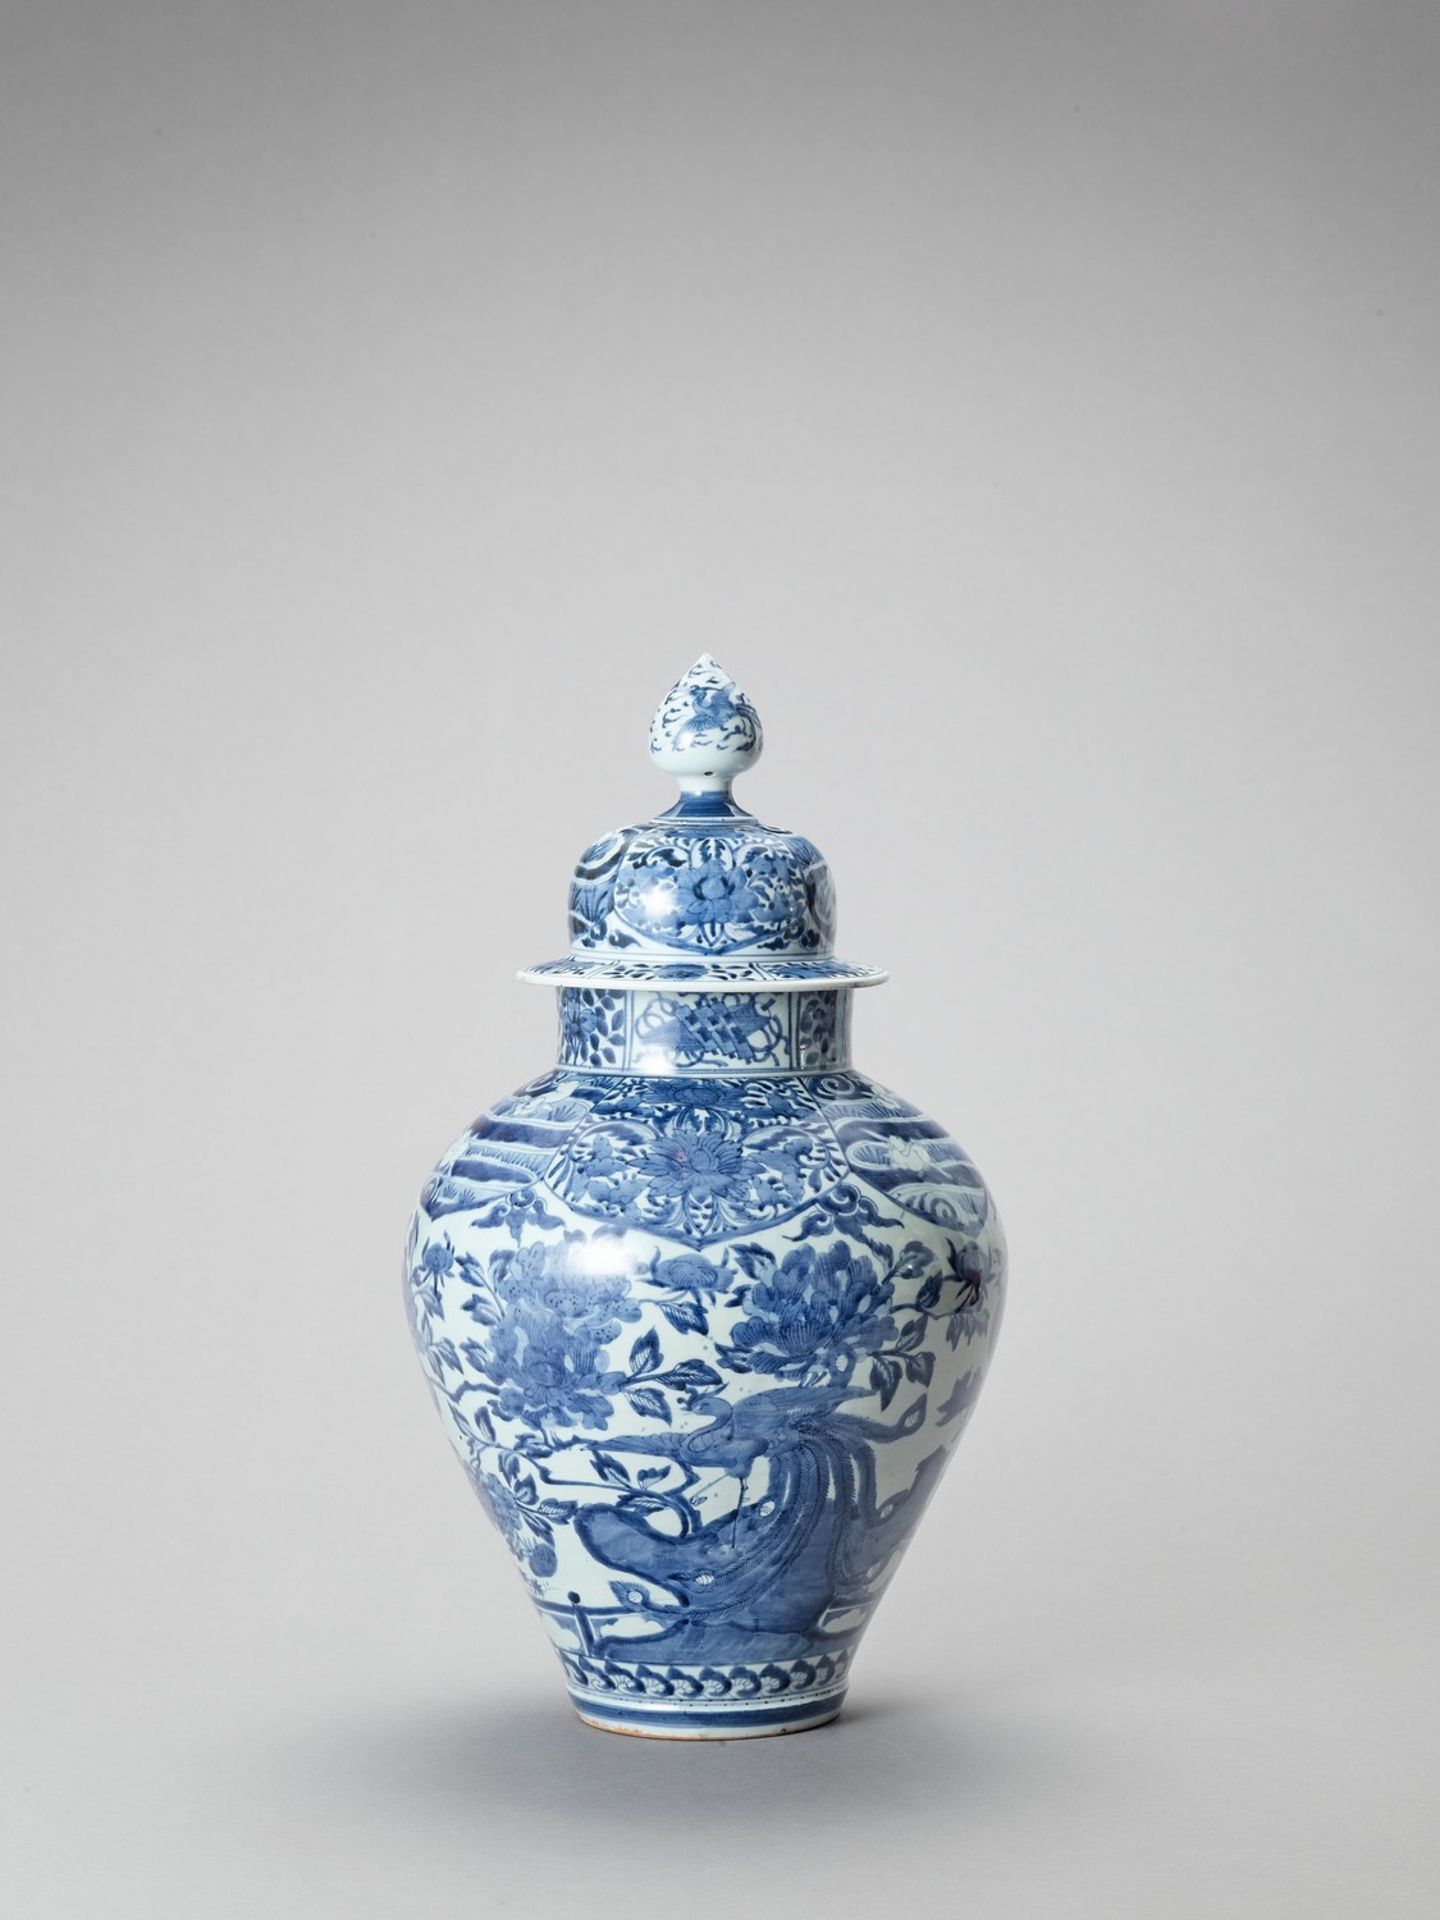 A LARGE BLUE AND WHITE PORCELAIN JAR AND COVER